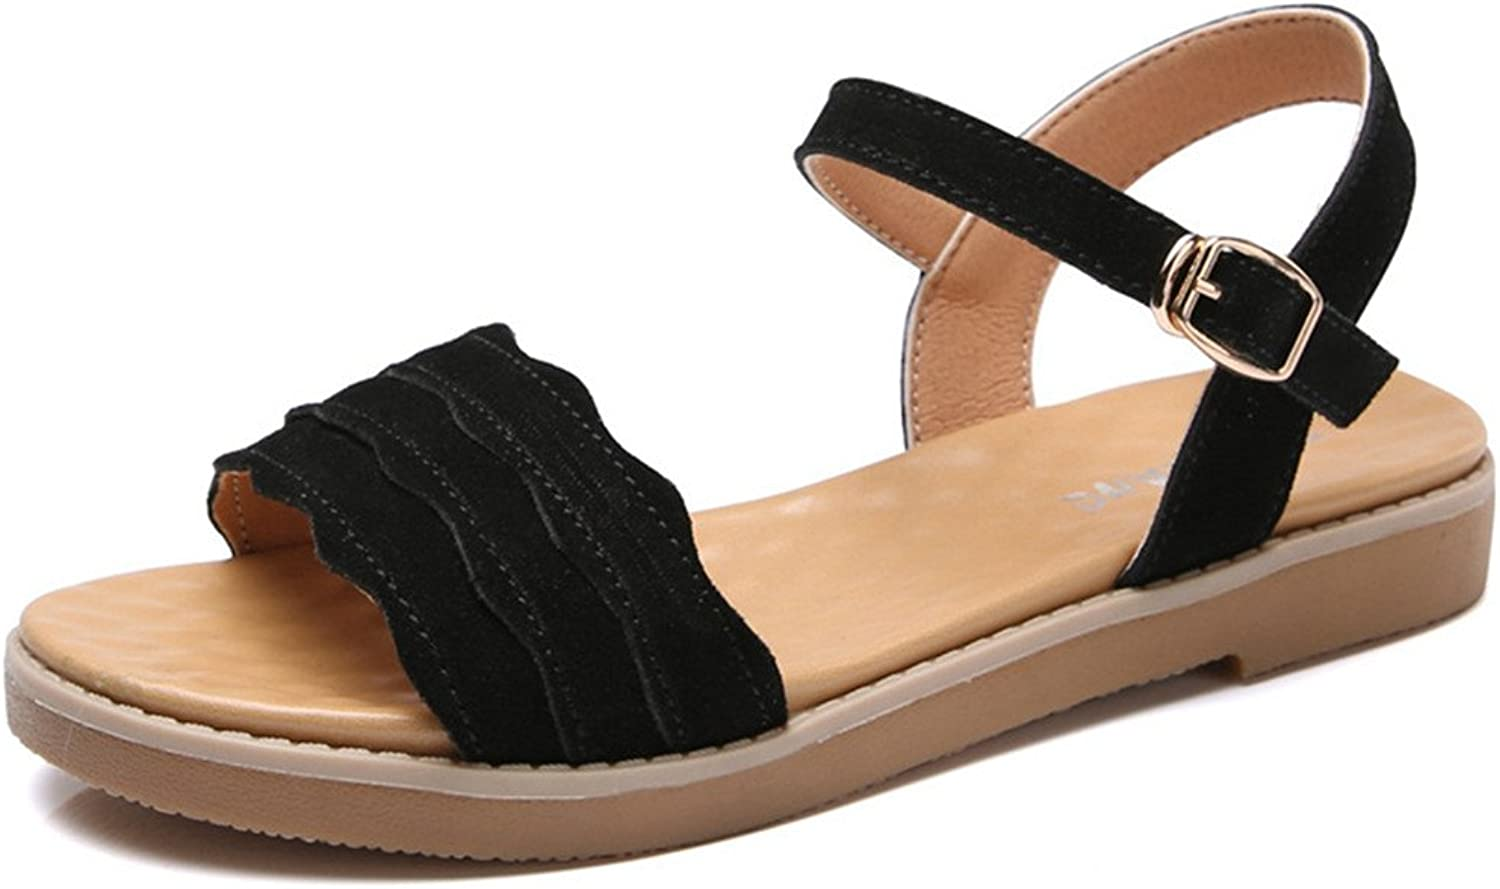 Giles Jones Women Flip Flops Flat Sandals,Cute Platform Buckle Open Toe Slides Beach shoes